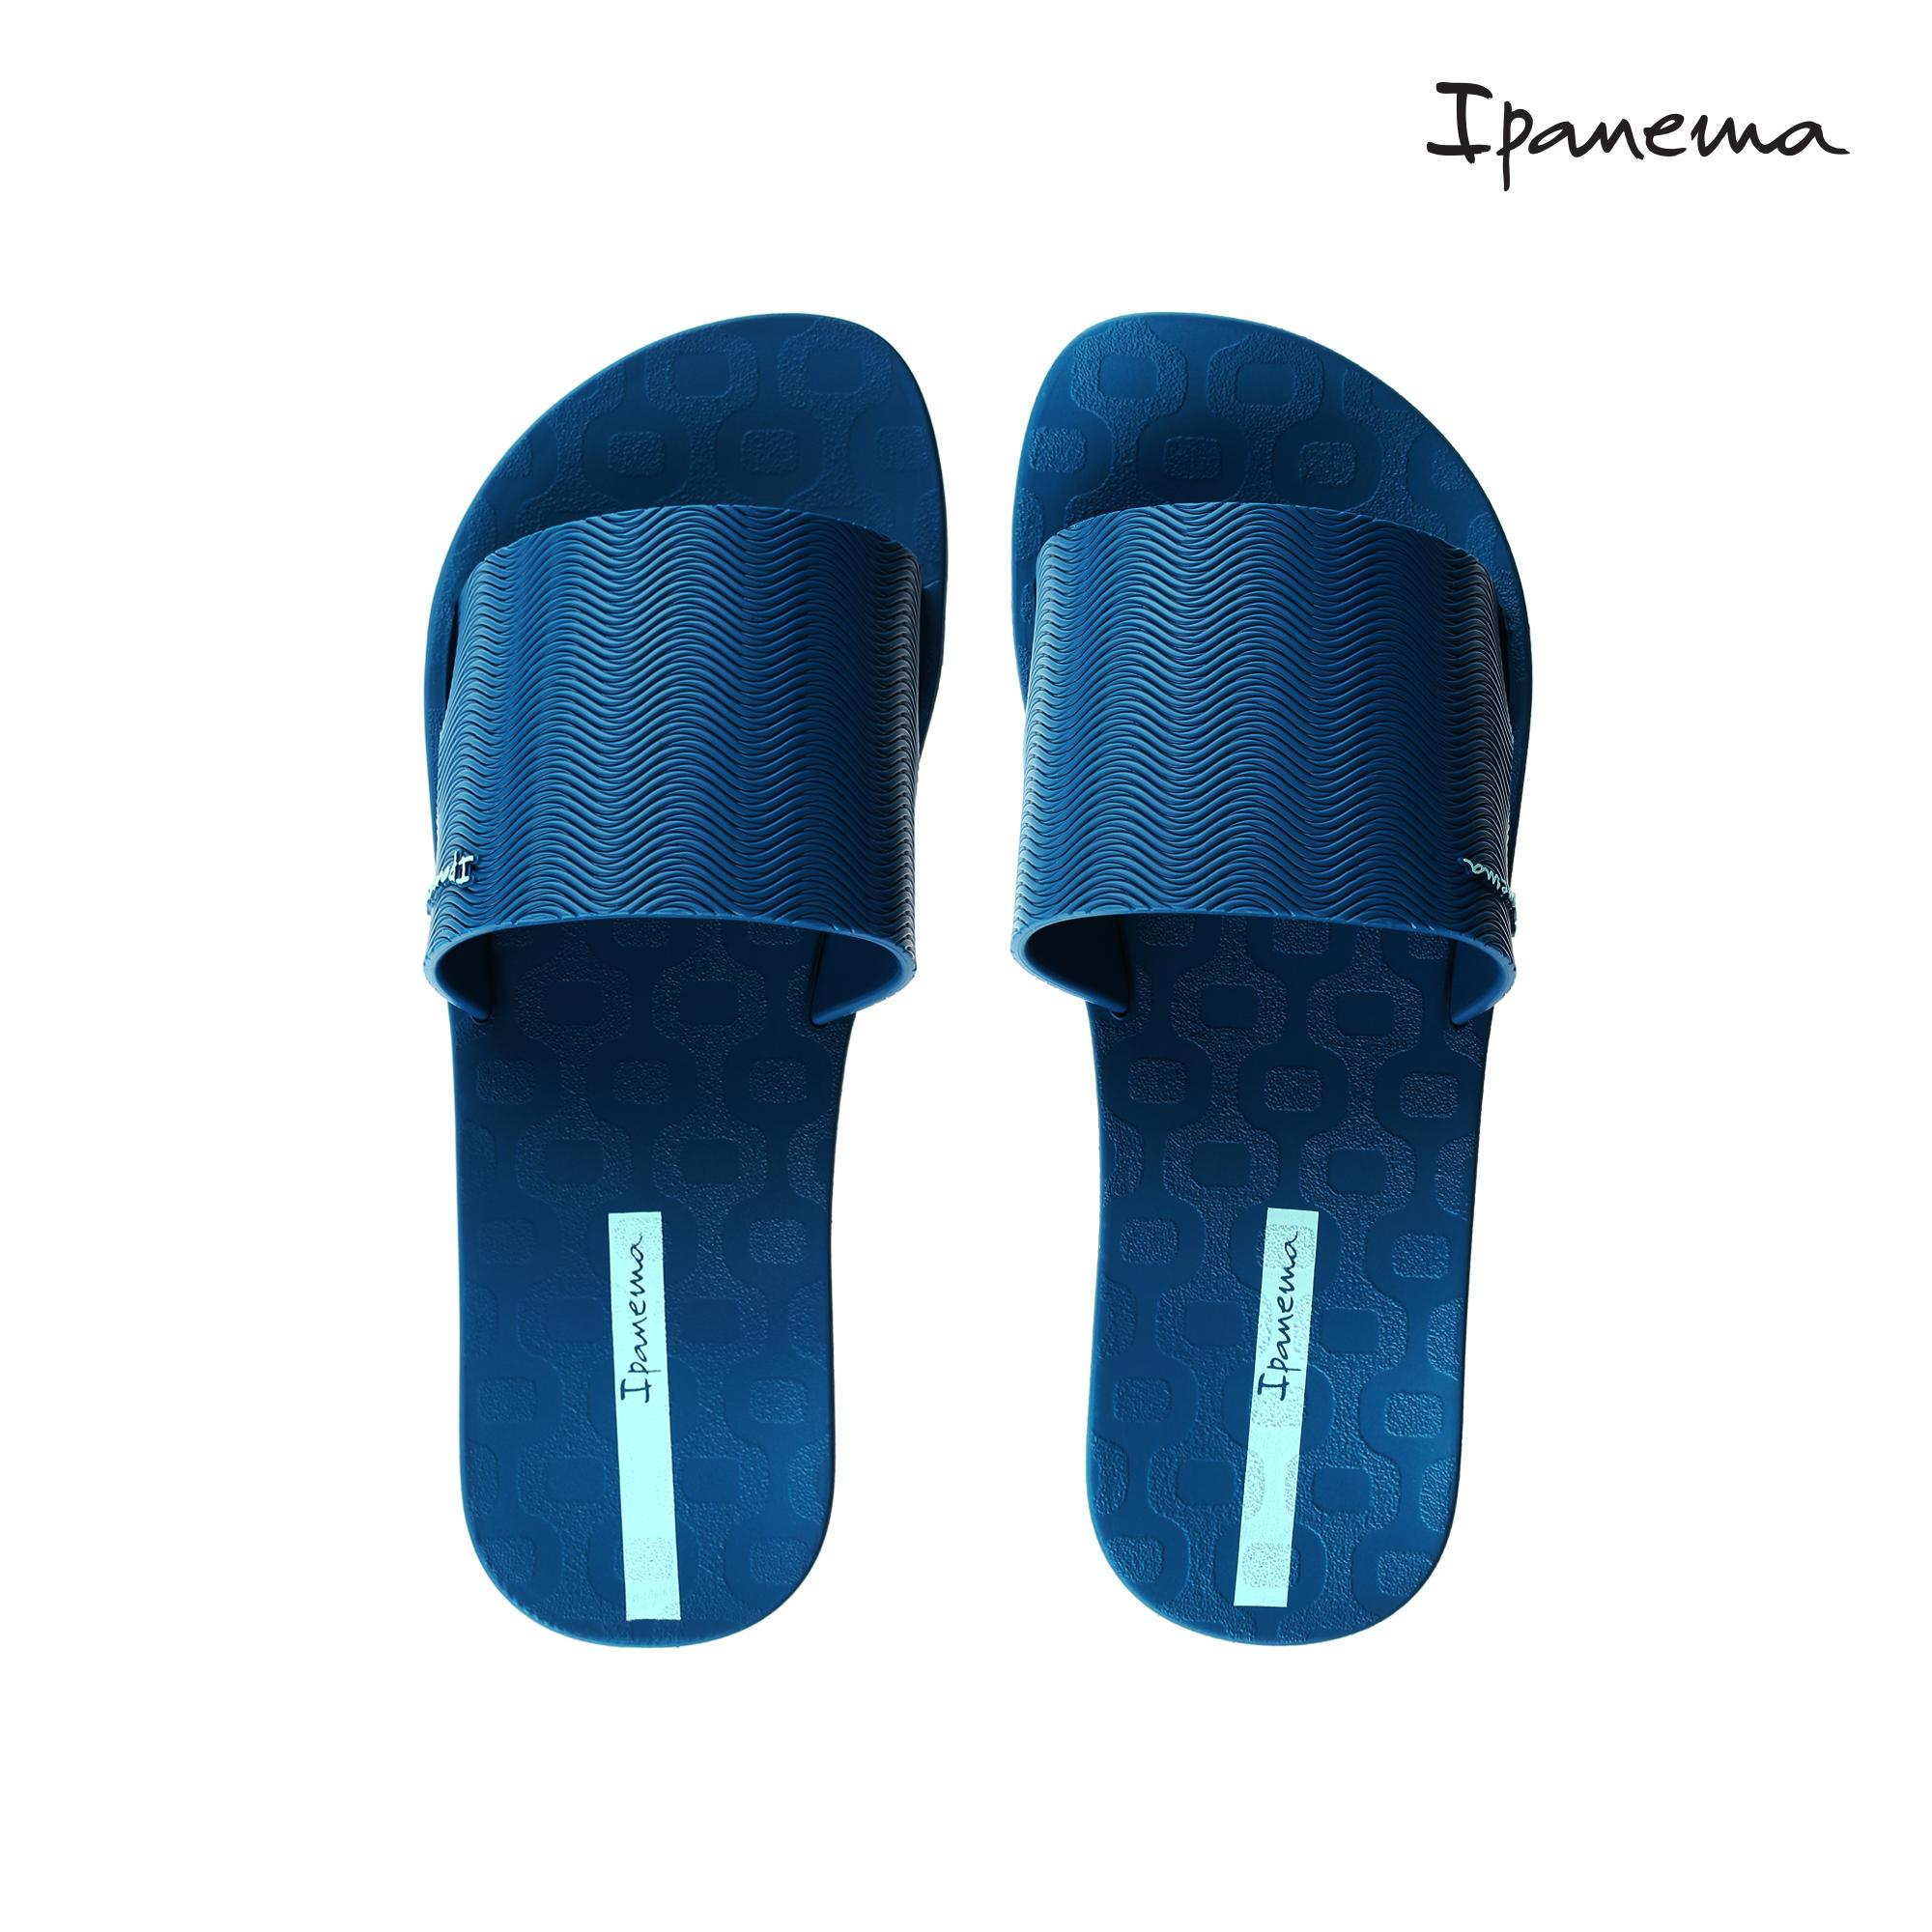 b3e0eacfd Ipanema Philippines  Ipanema price list - Ipanema Flip Flop   Sandals for  sale